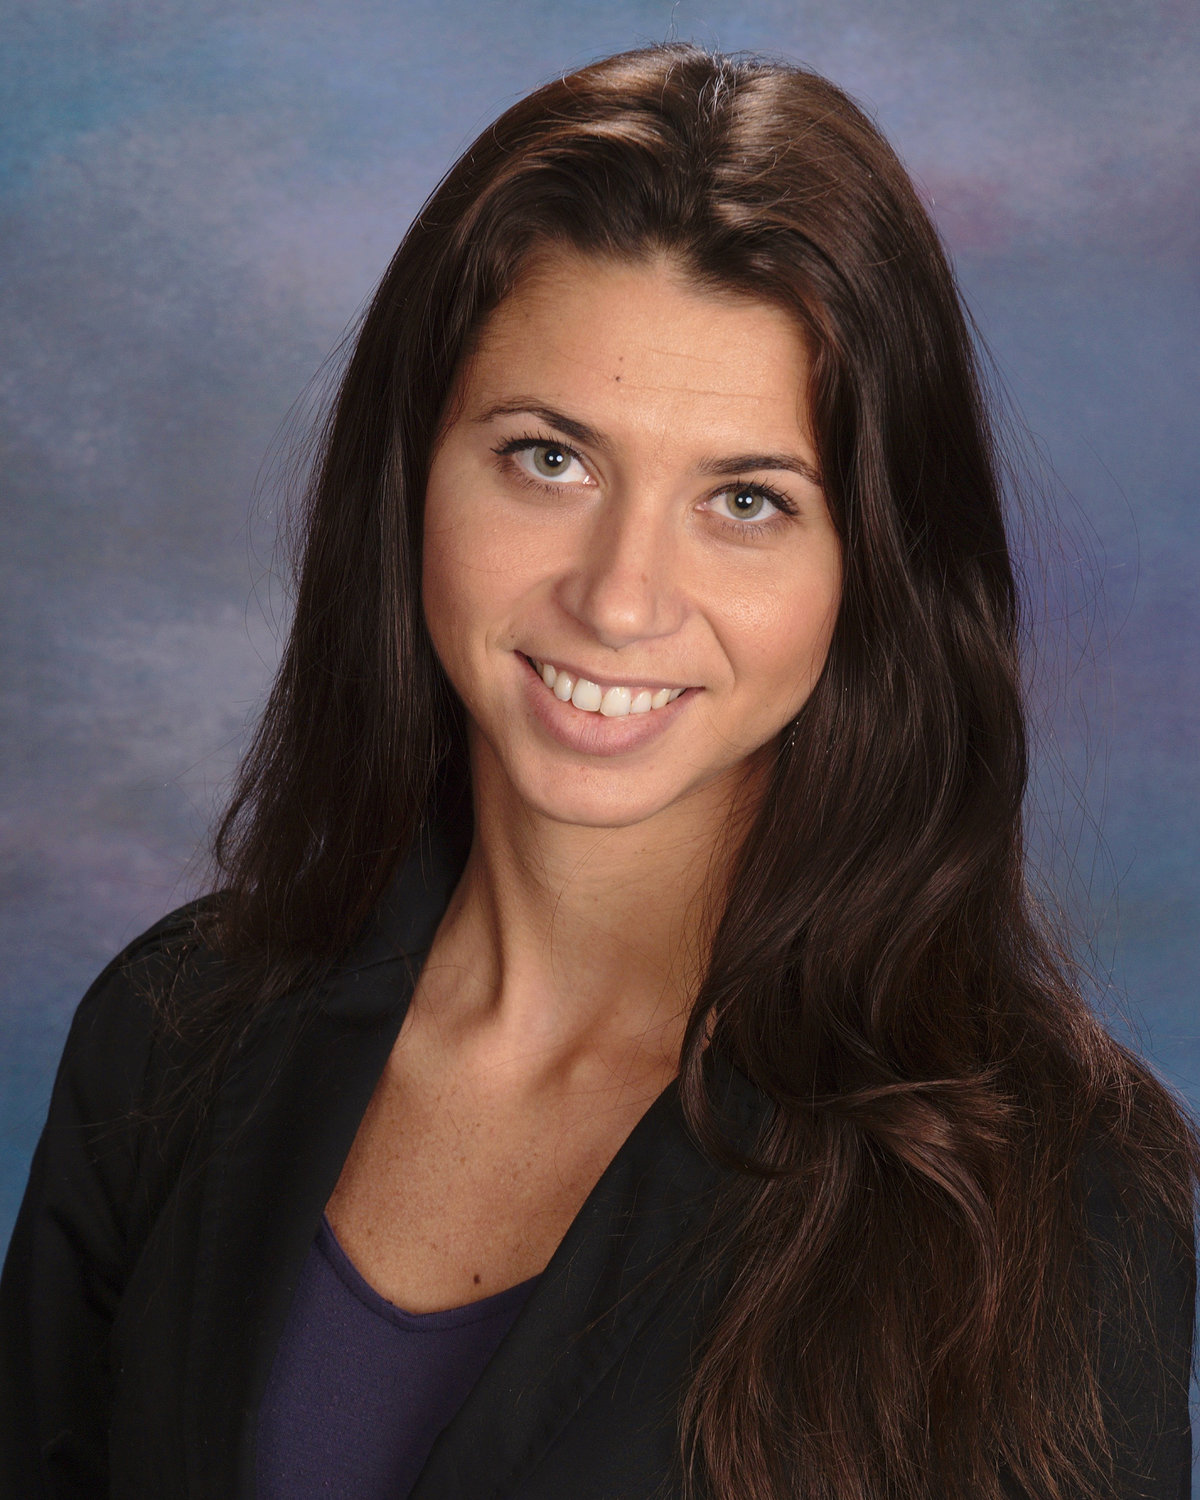 Francesca Righetti : Assistant professor at Experimental and Applied Psychology